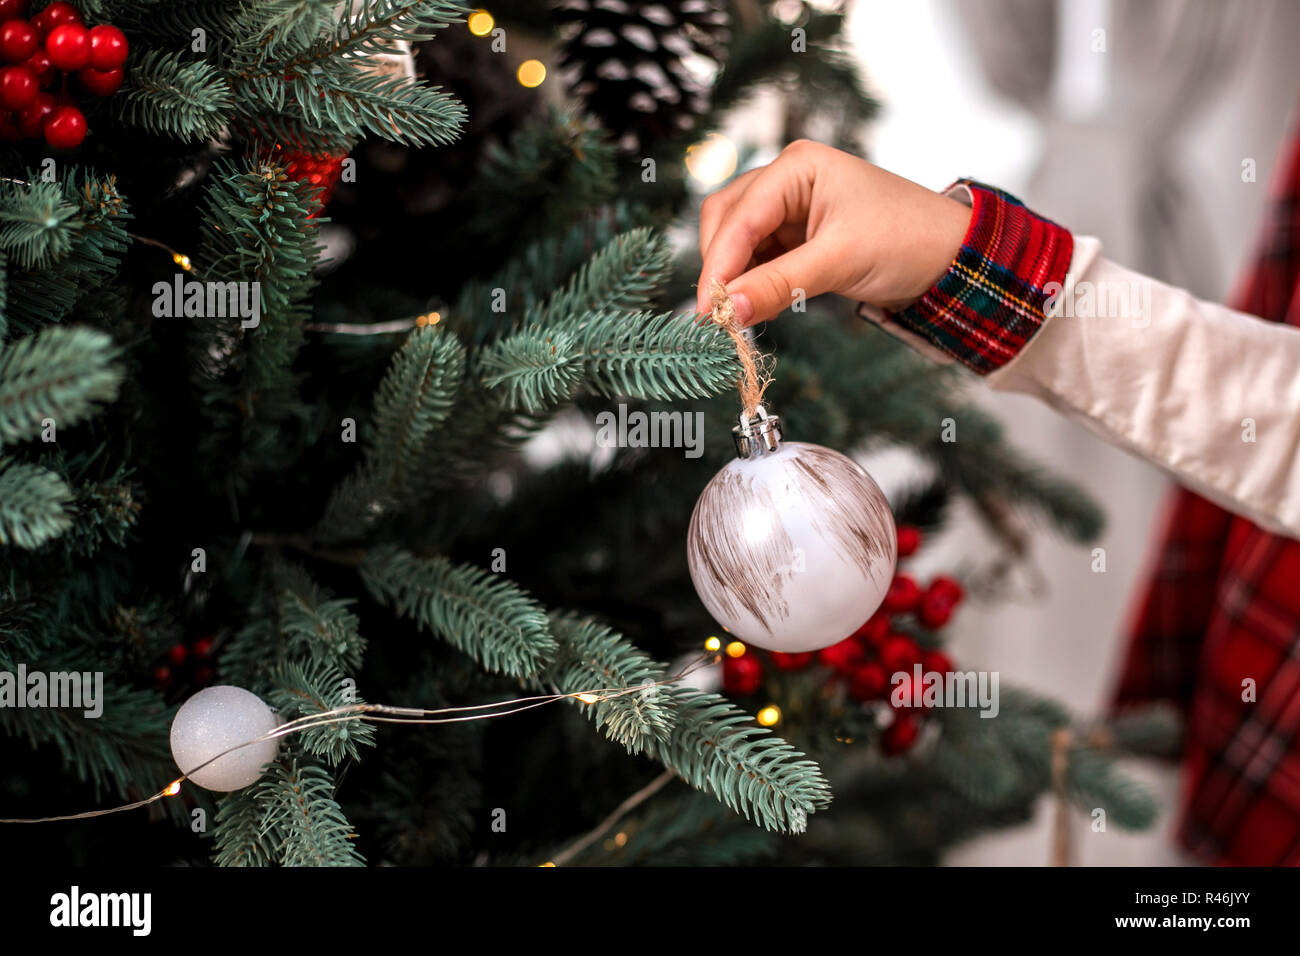 Little child's hand decorating Christmas tree indoors. - Stock Image